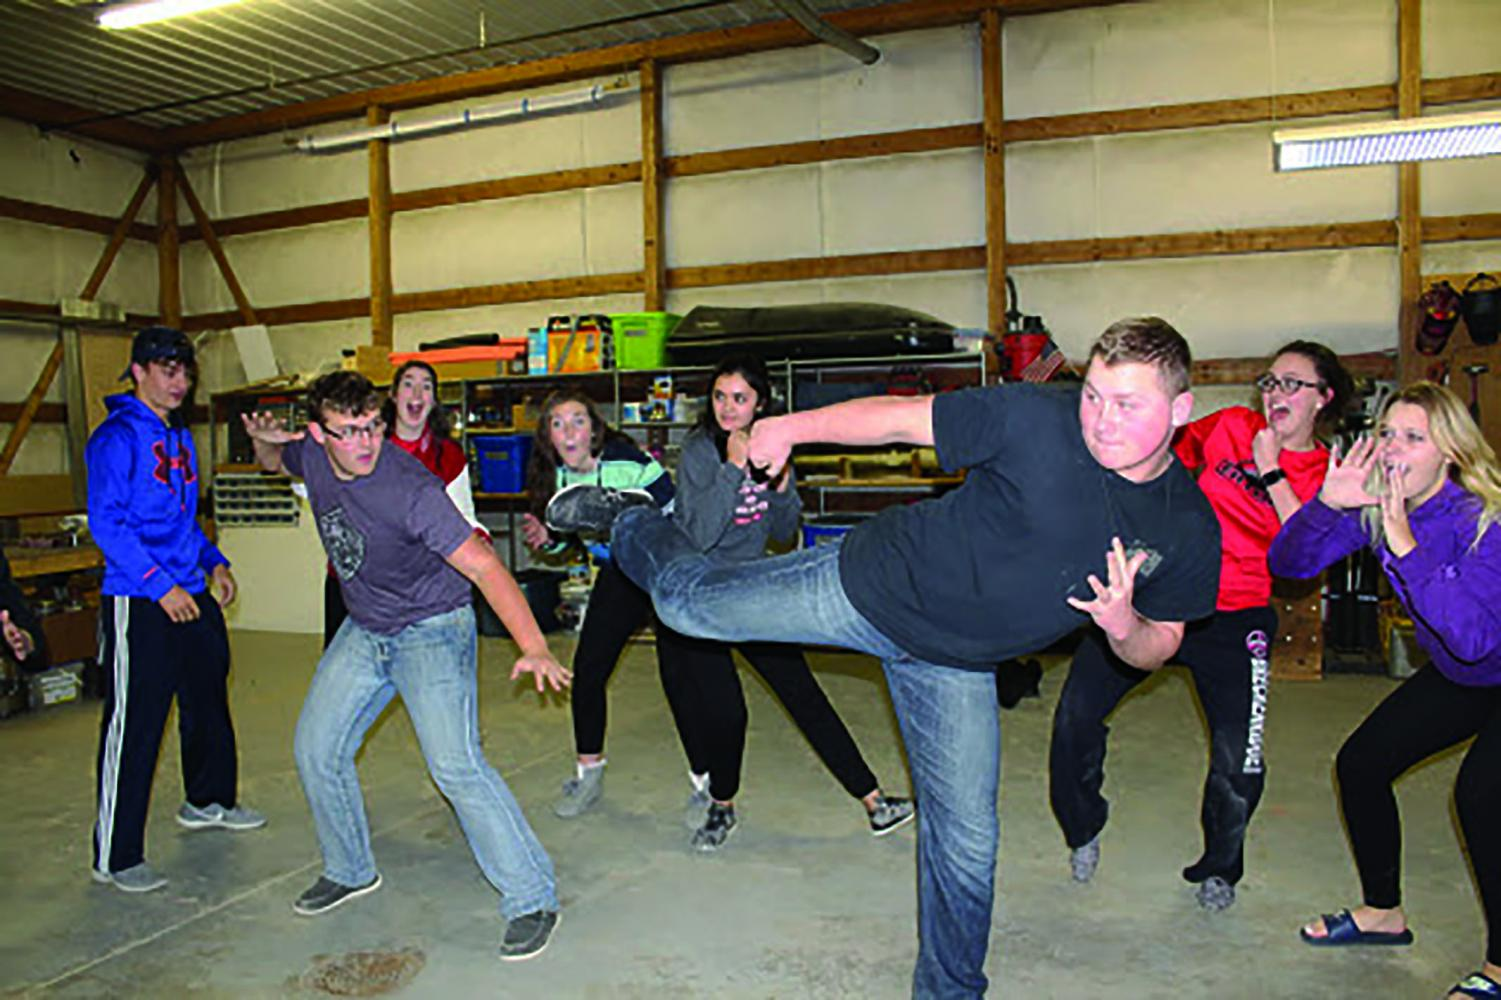 Production holds an impromptu rehearsal to practice lines and a fight scene.